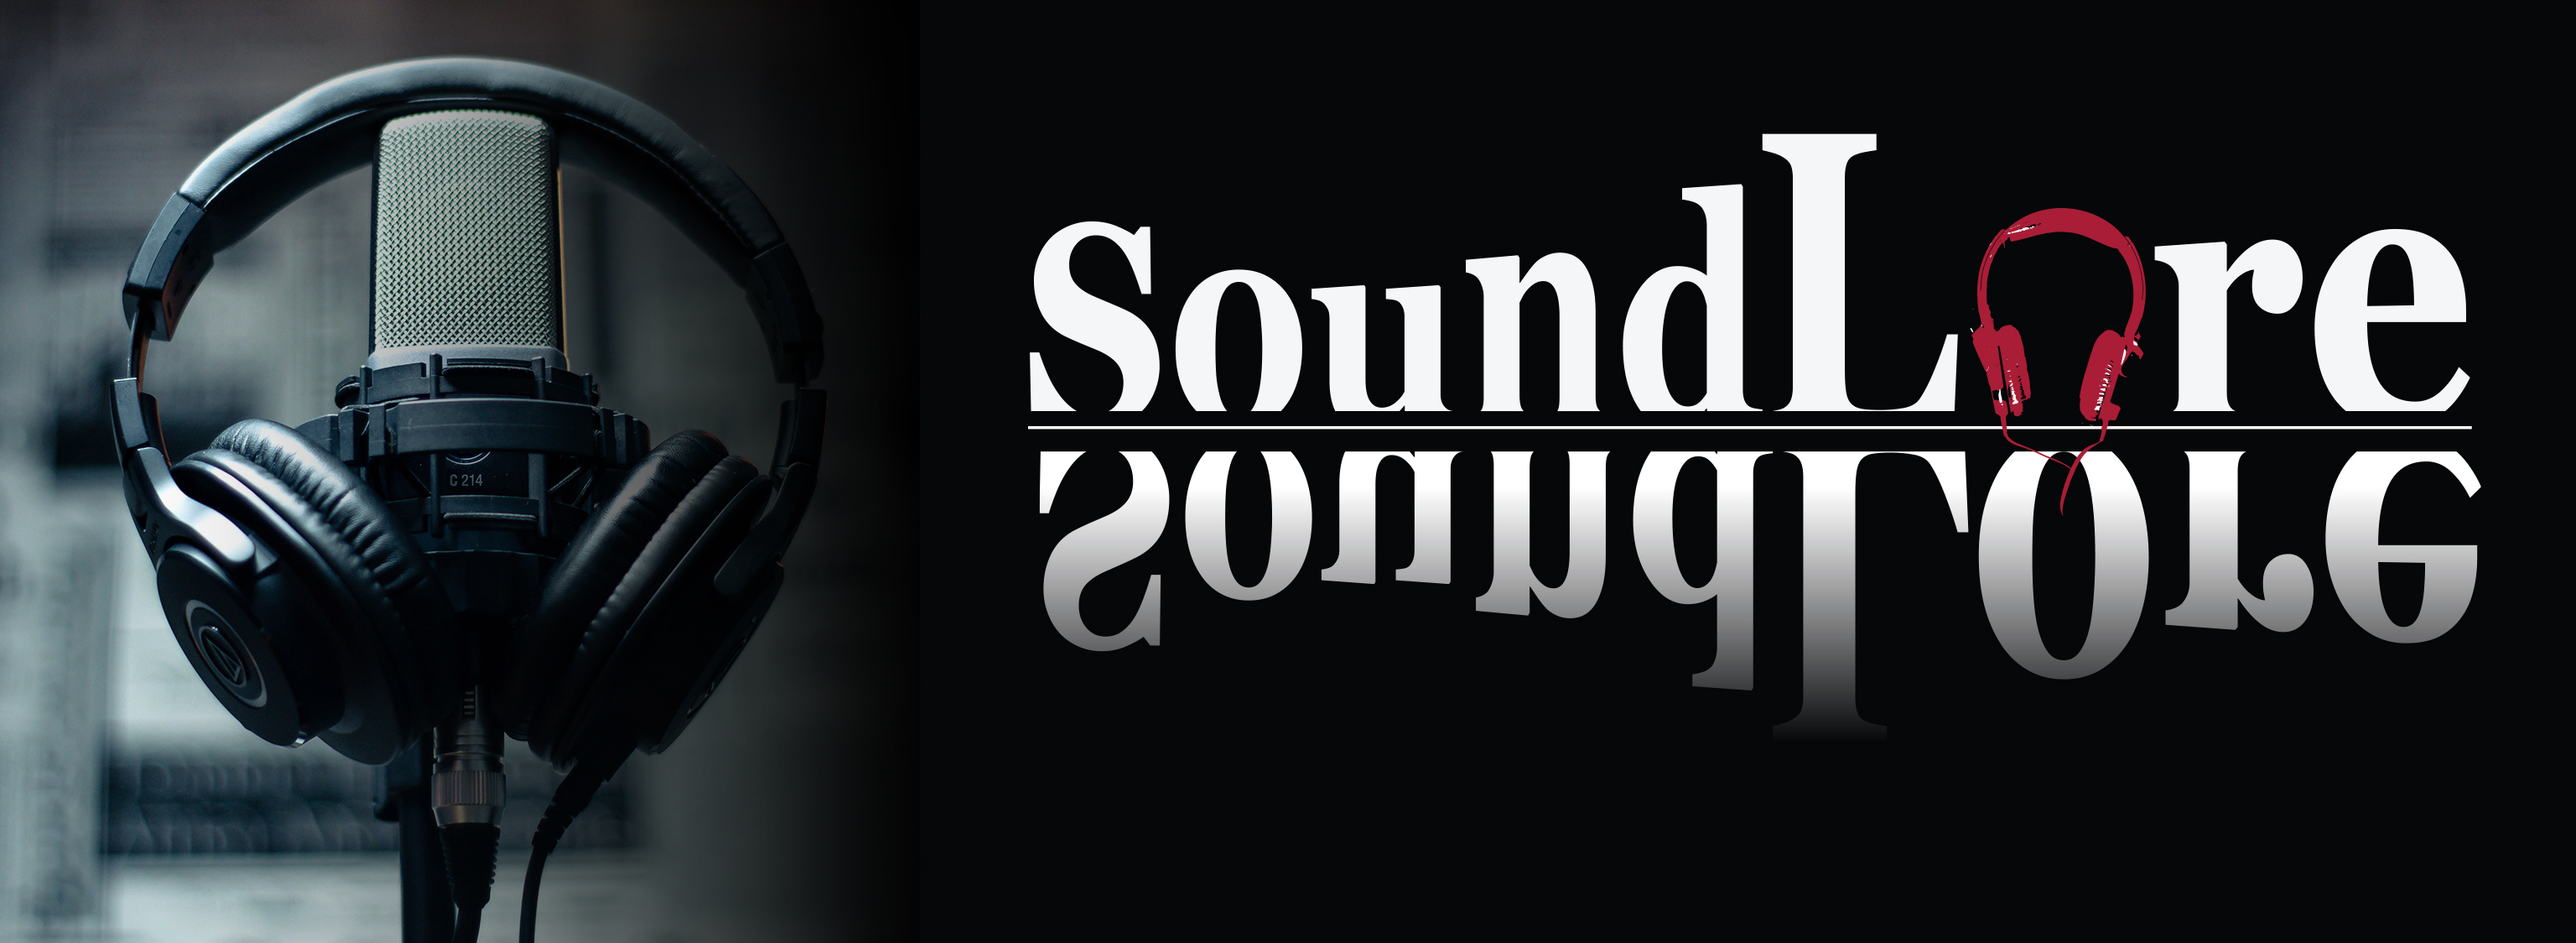 Soundlore podcast page banner image.